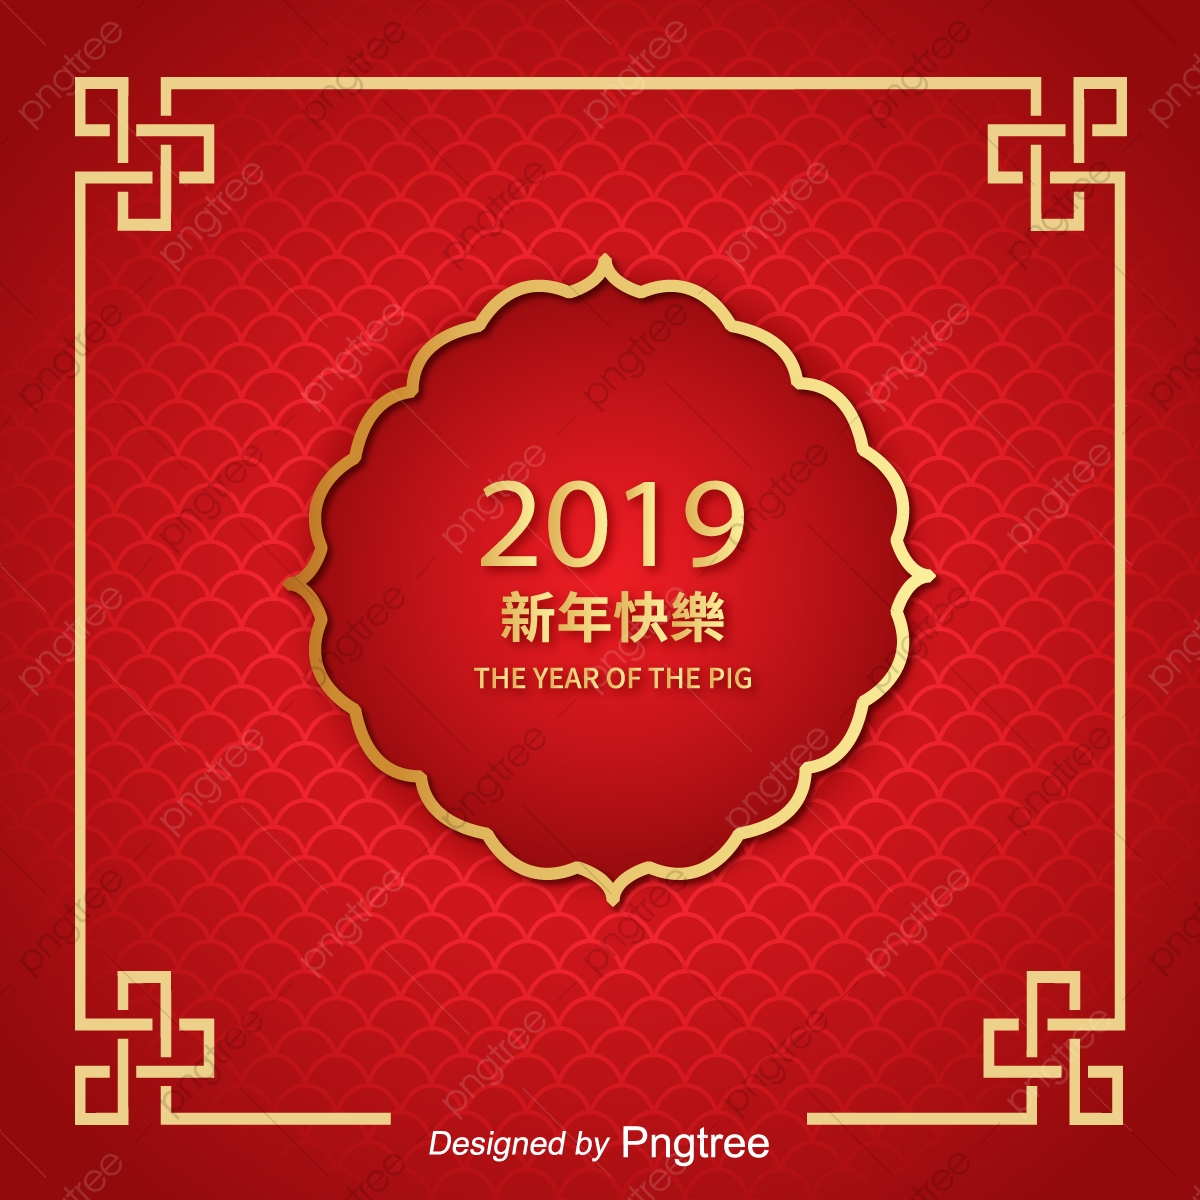 Background Elements Of Chinese Red Texture Golden Border For New